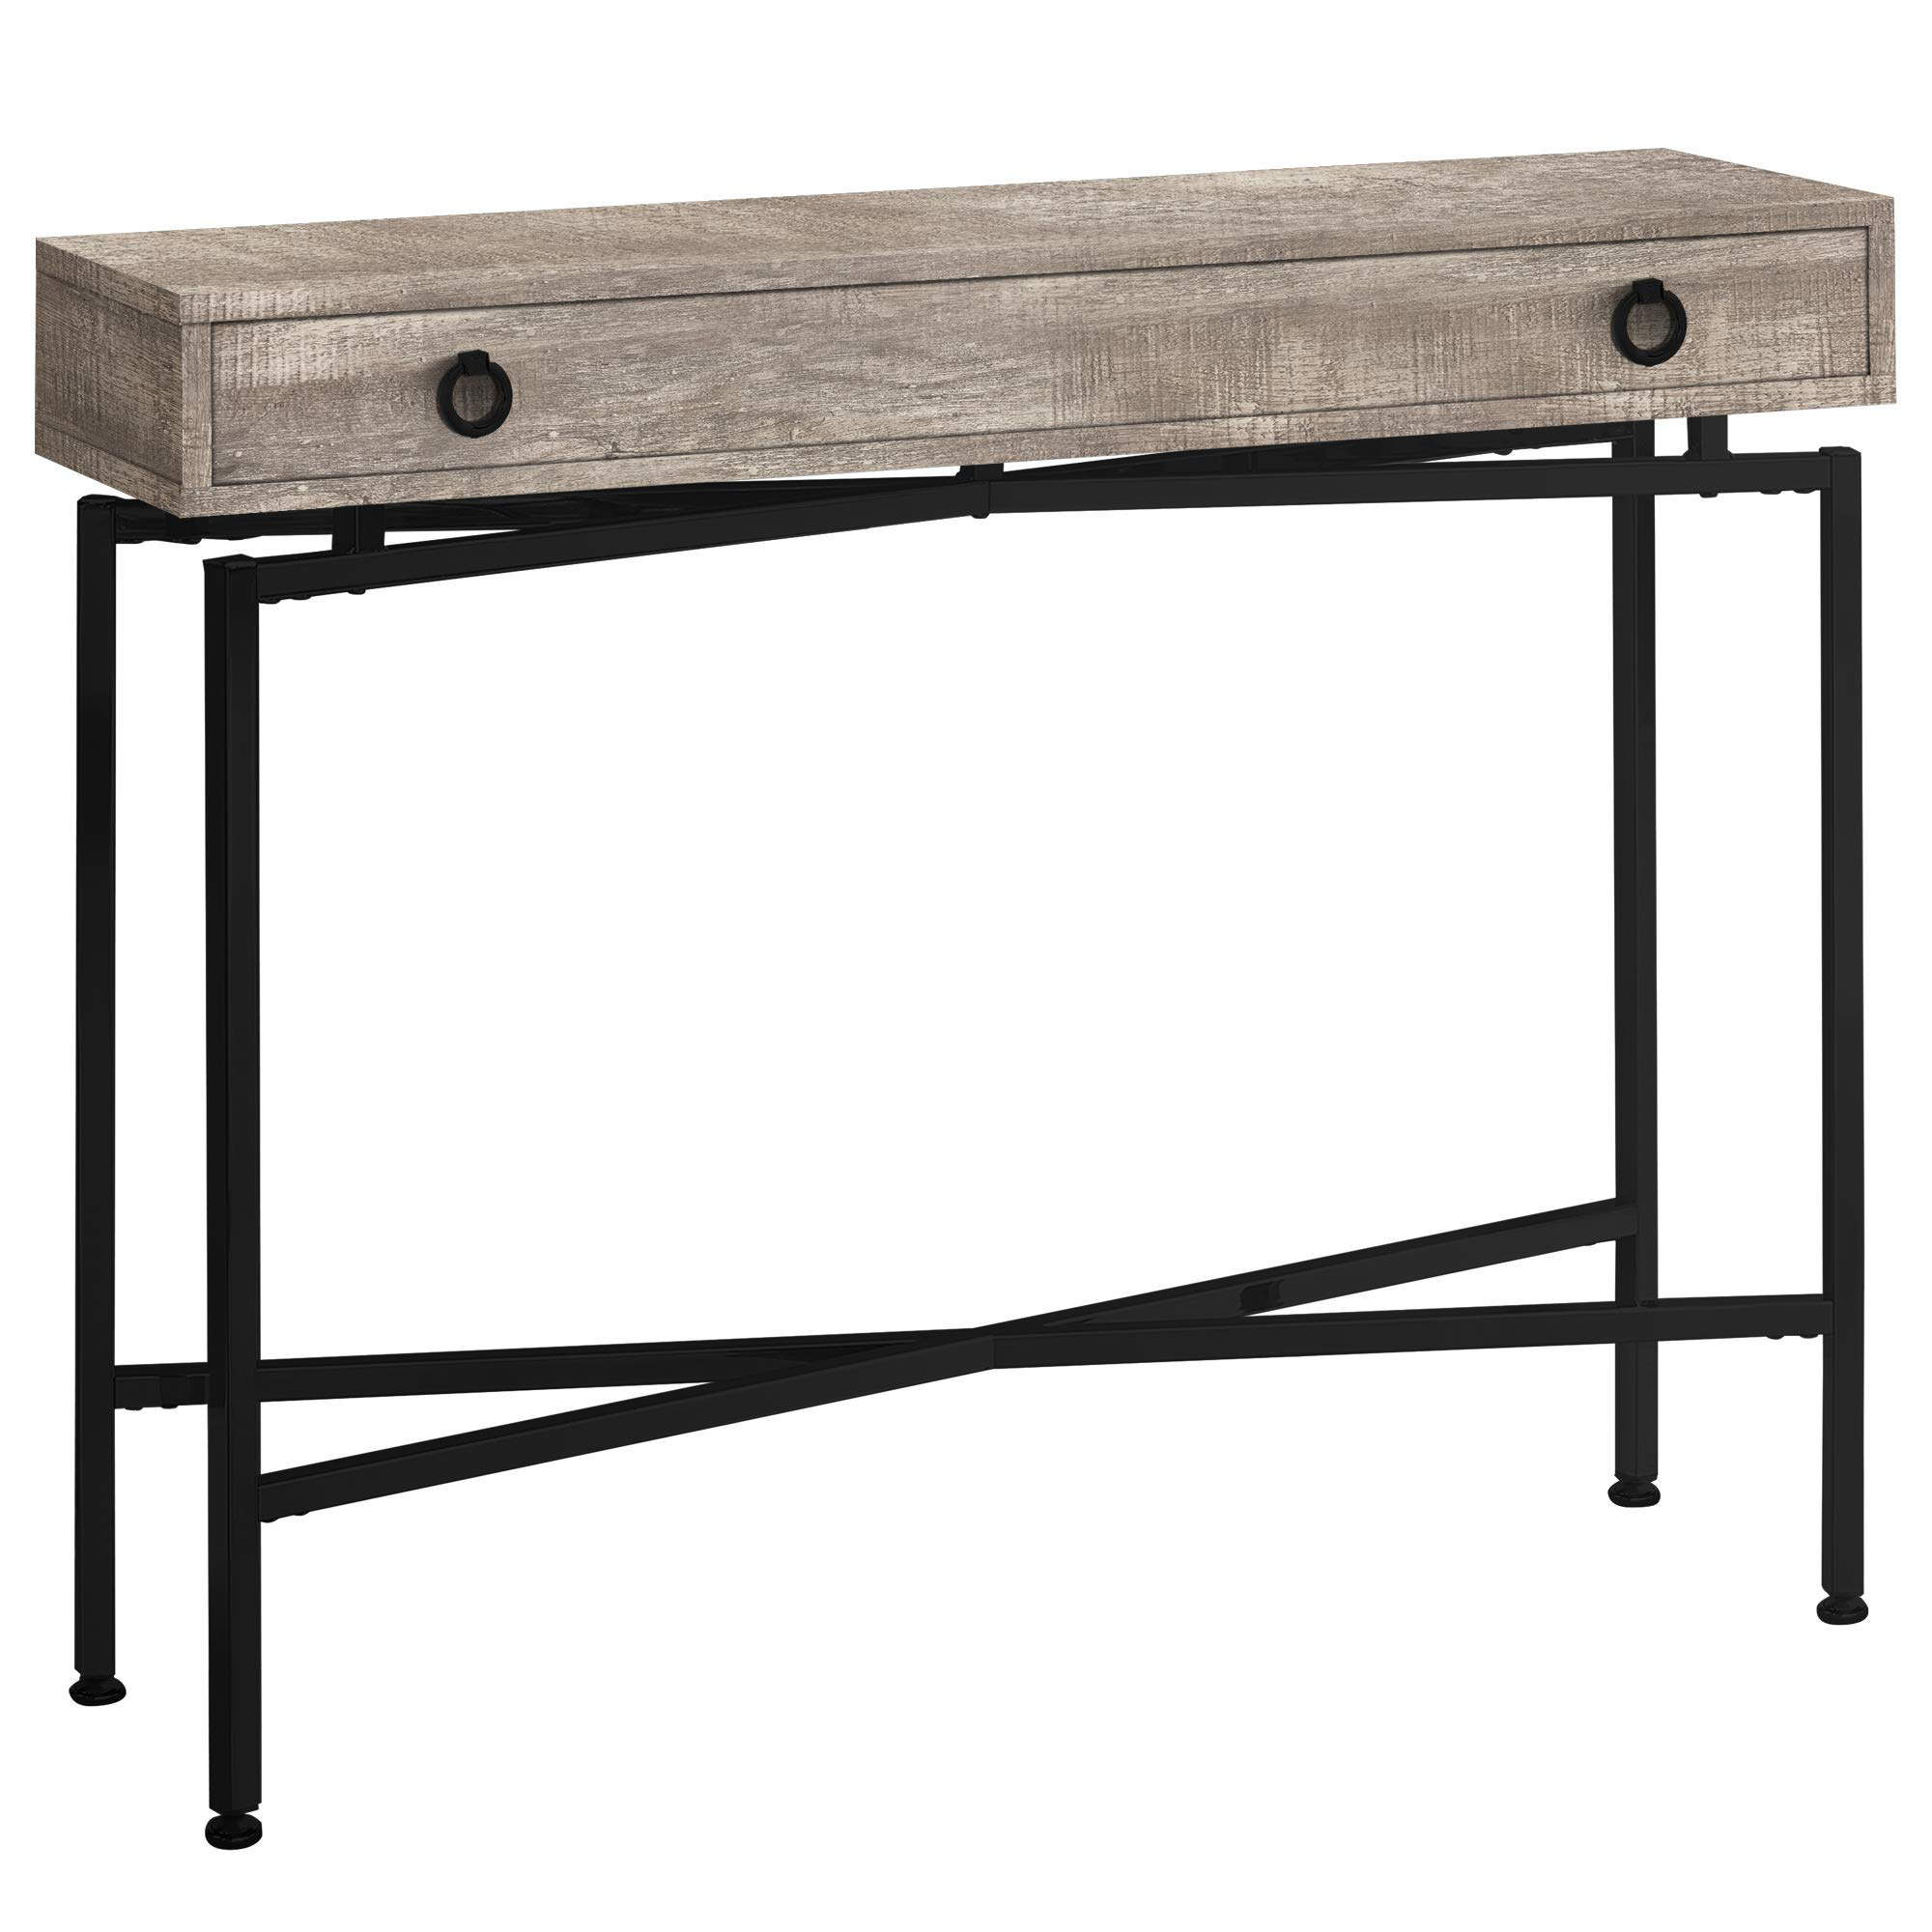 Monarch Specialties I I 3455 Console Sofa Accent Table, 42'' L, Taupe Reclaimed Wood-Look/Black Base by Monarch Specialties